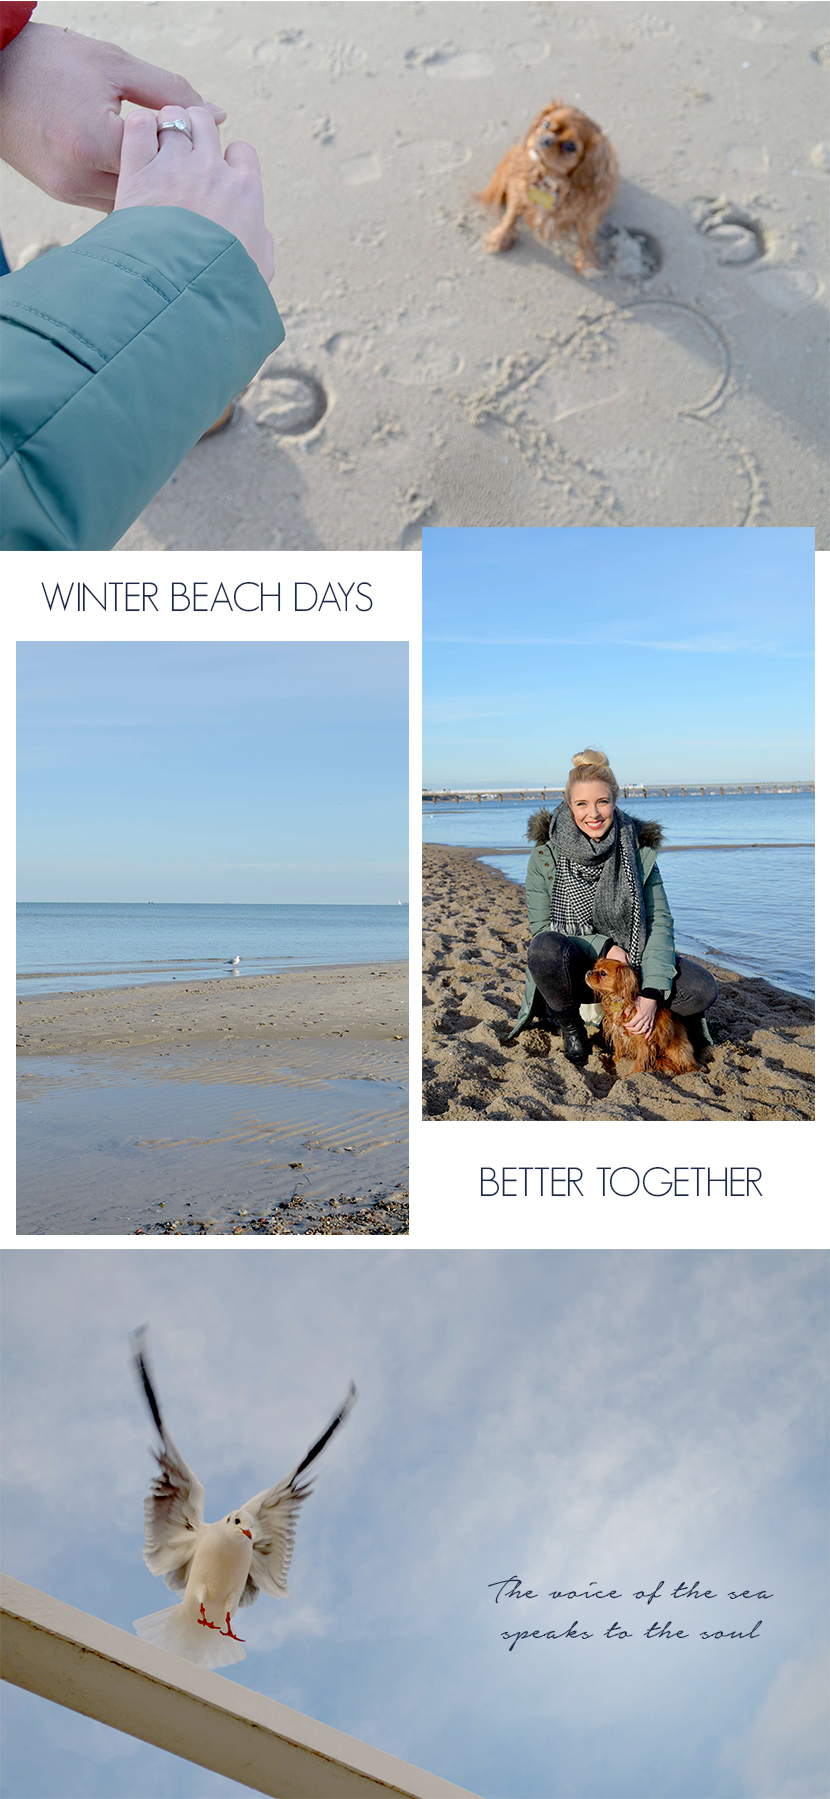 Cold-Breeze-Belle-Melange-Loved-Winter-at-the-sea-4